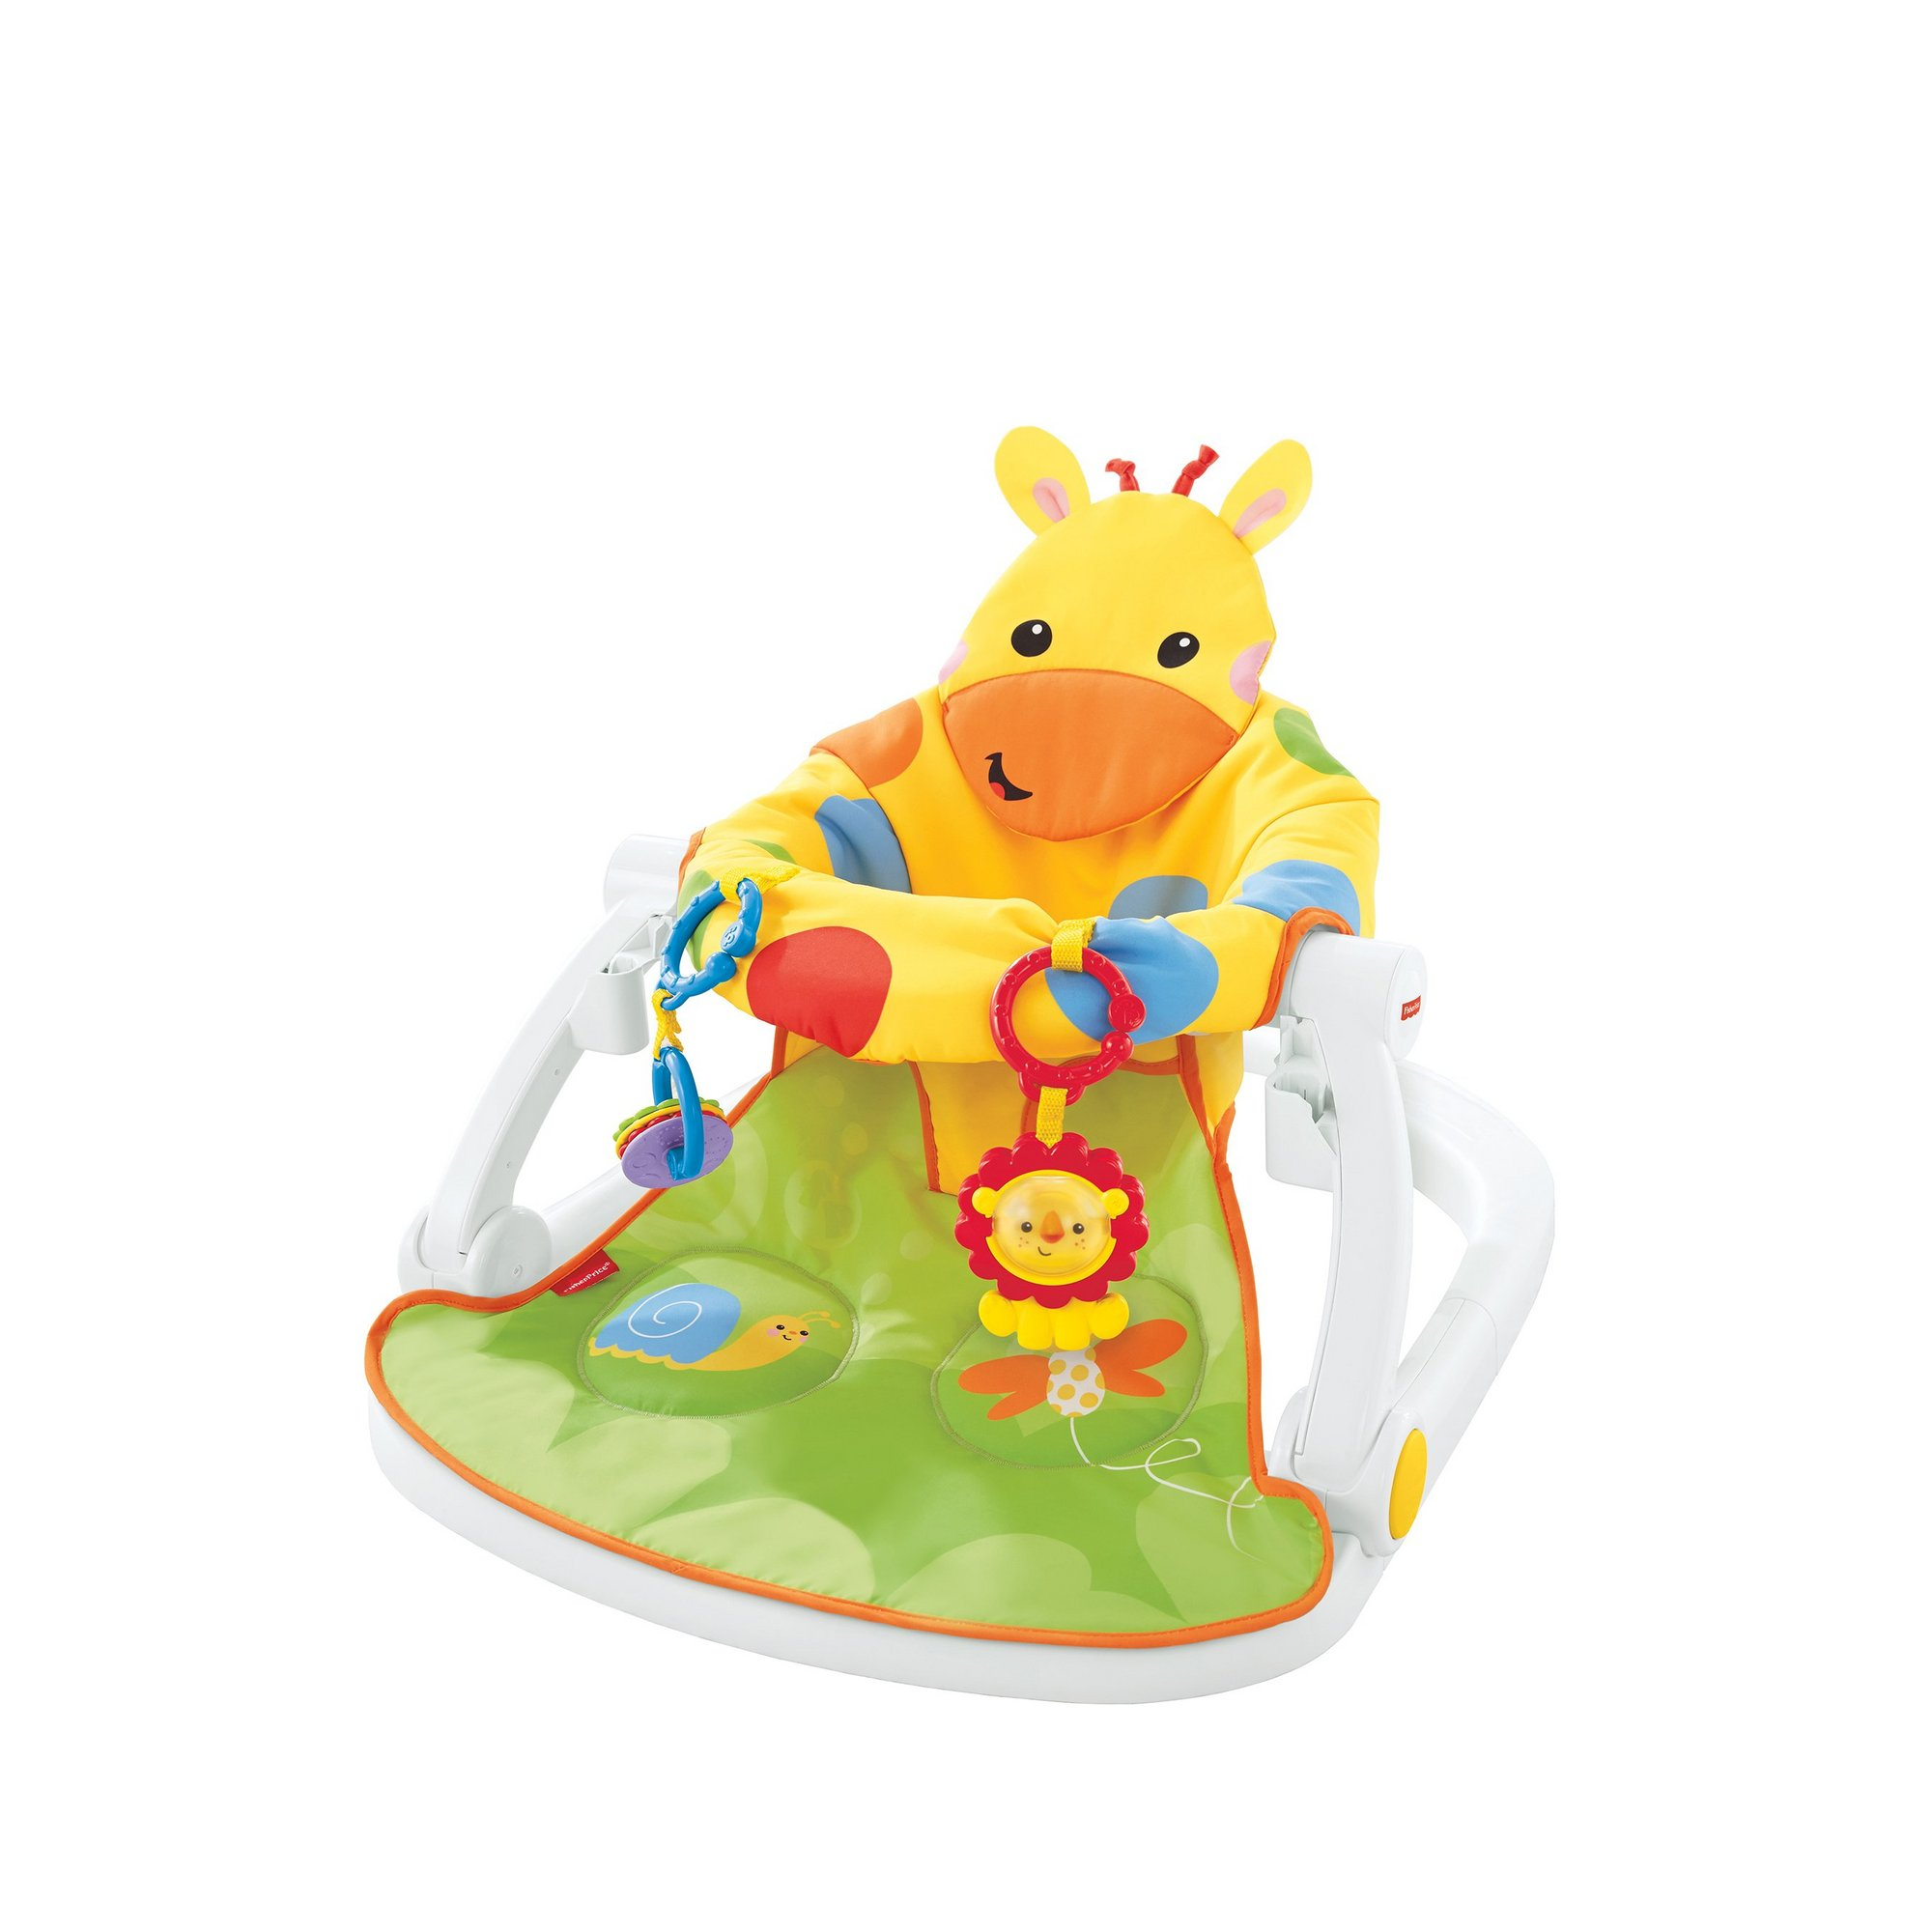 Image of Fisher Price Sit Me Up Giraffe Floor Seat + Tray